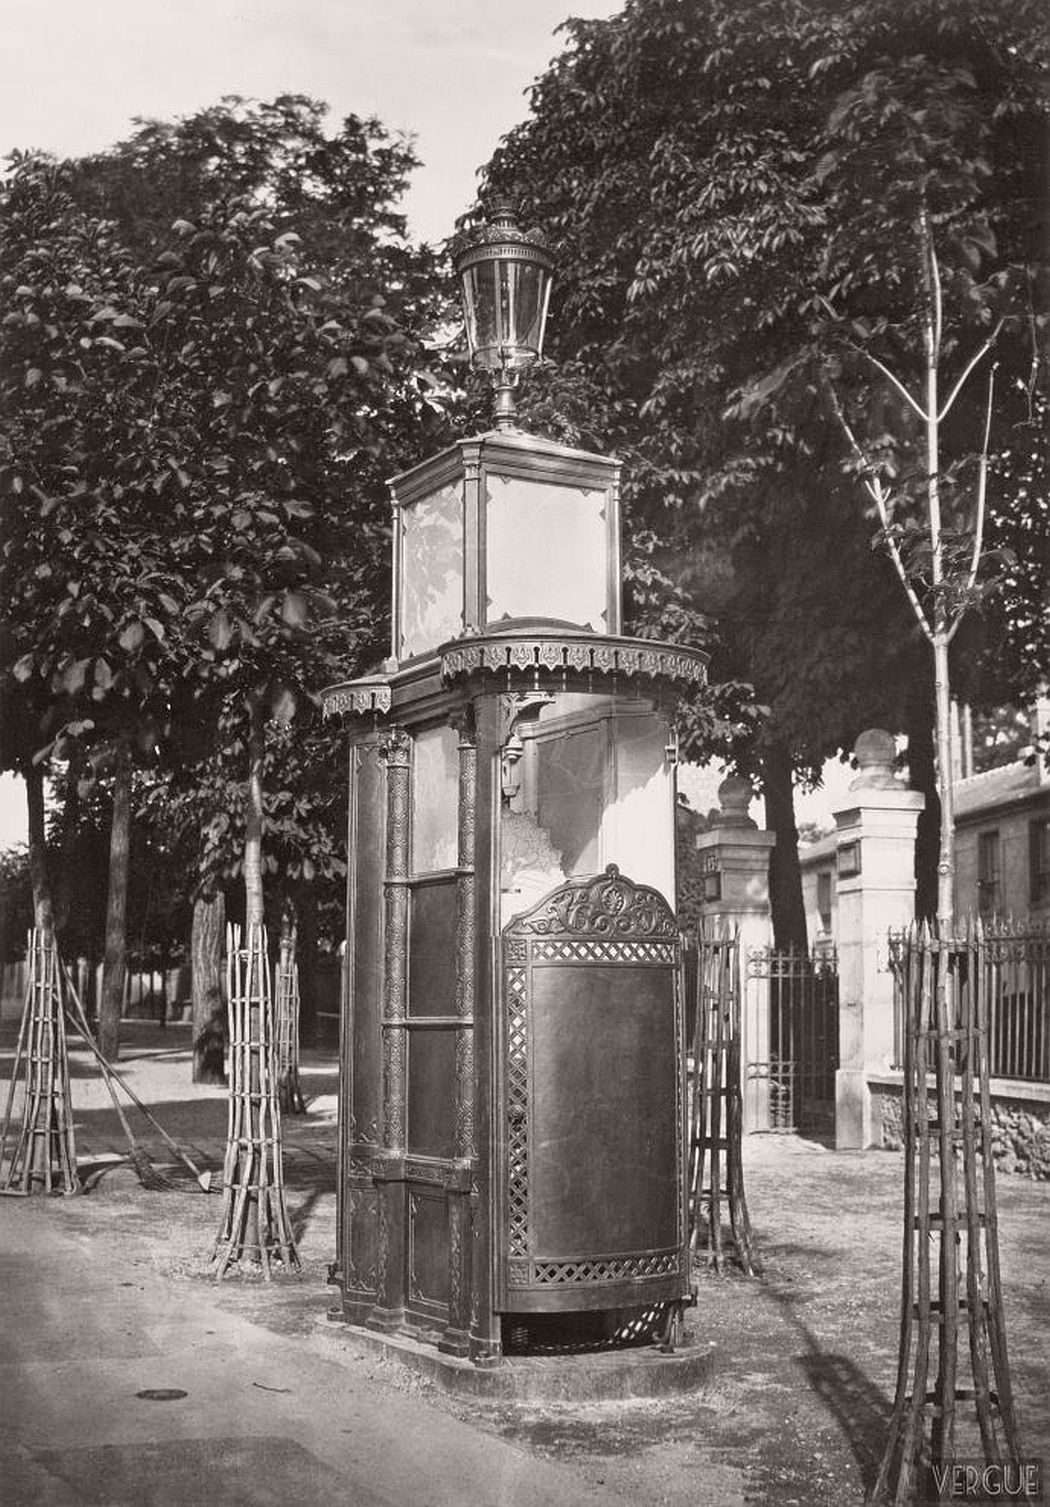 vintage-public-urinals-in-paris-by-charles-marville-19th-century-15